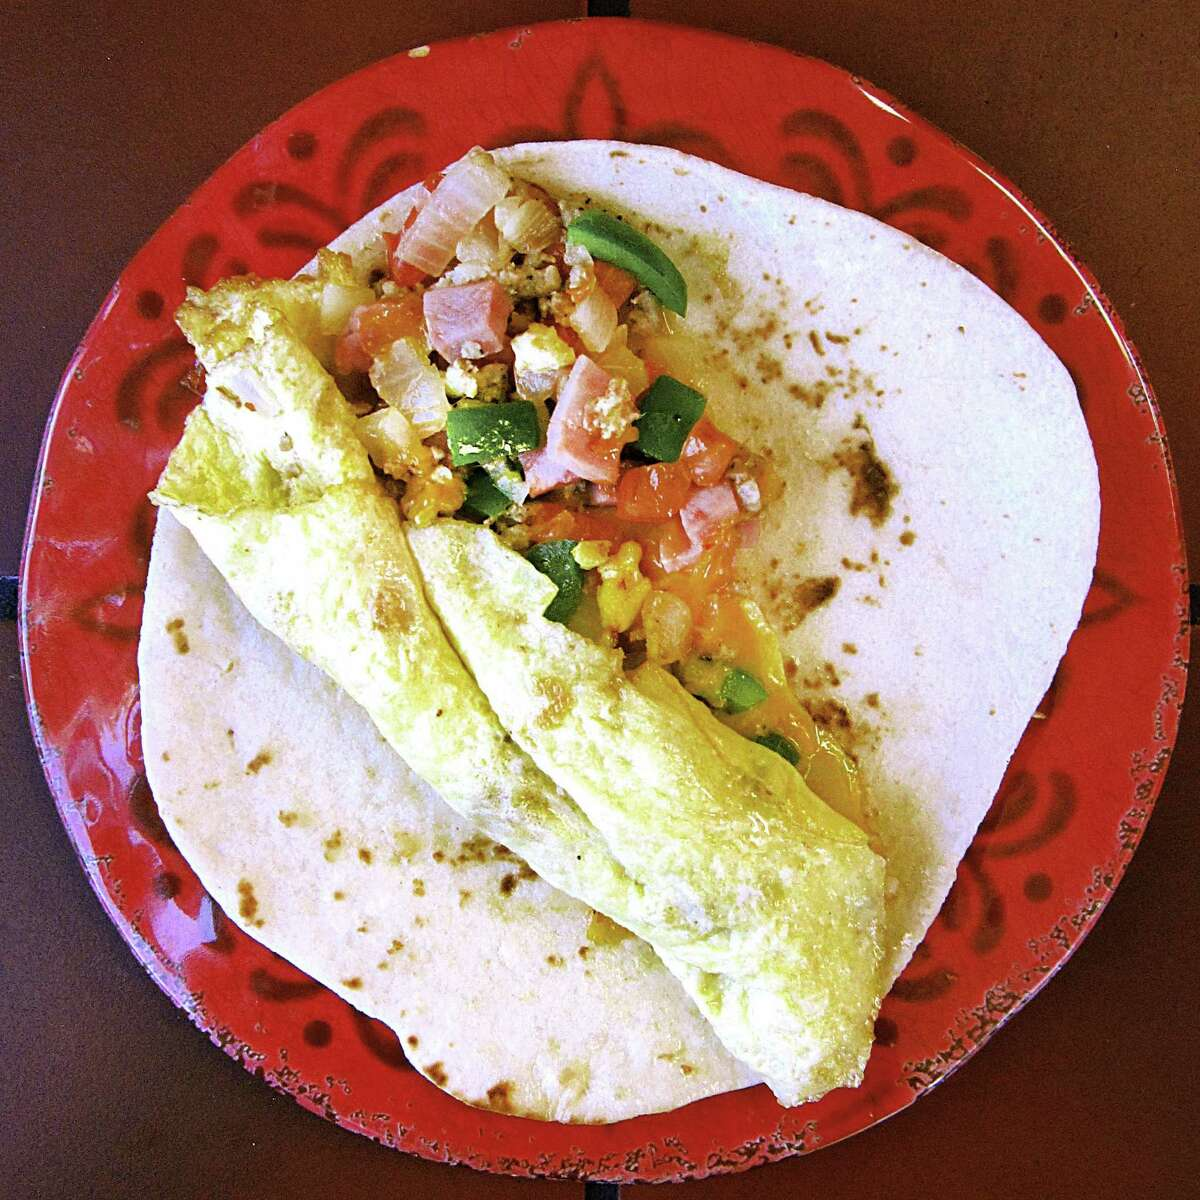 Taco of the Week: Omelet breakfast taco with eggs, ham, sausage, peppers, onions, tomatoes and cheese on a handmade flour tortilla from Ruthie's Mexican Restaurant.